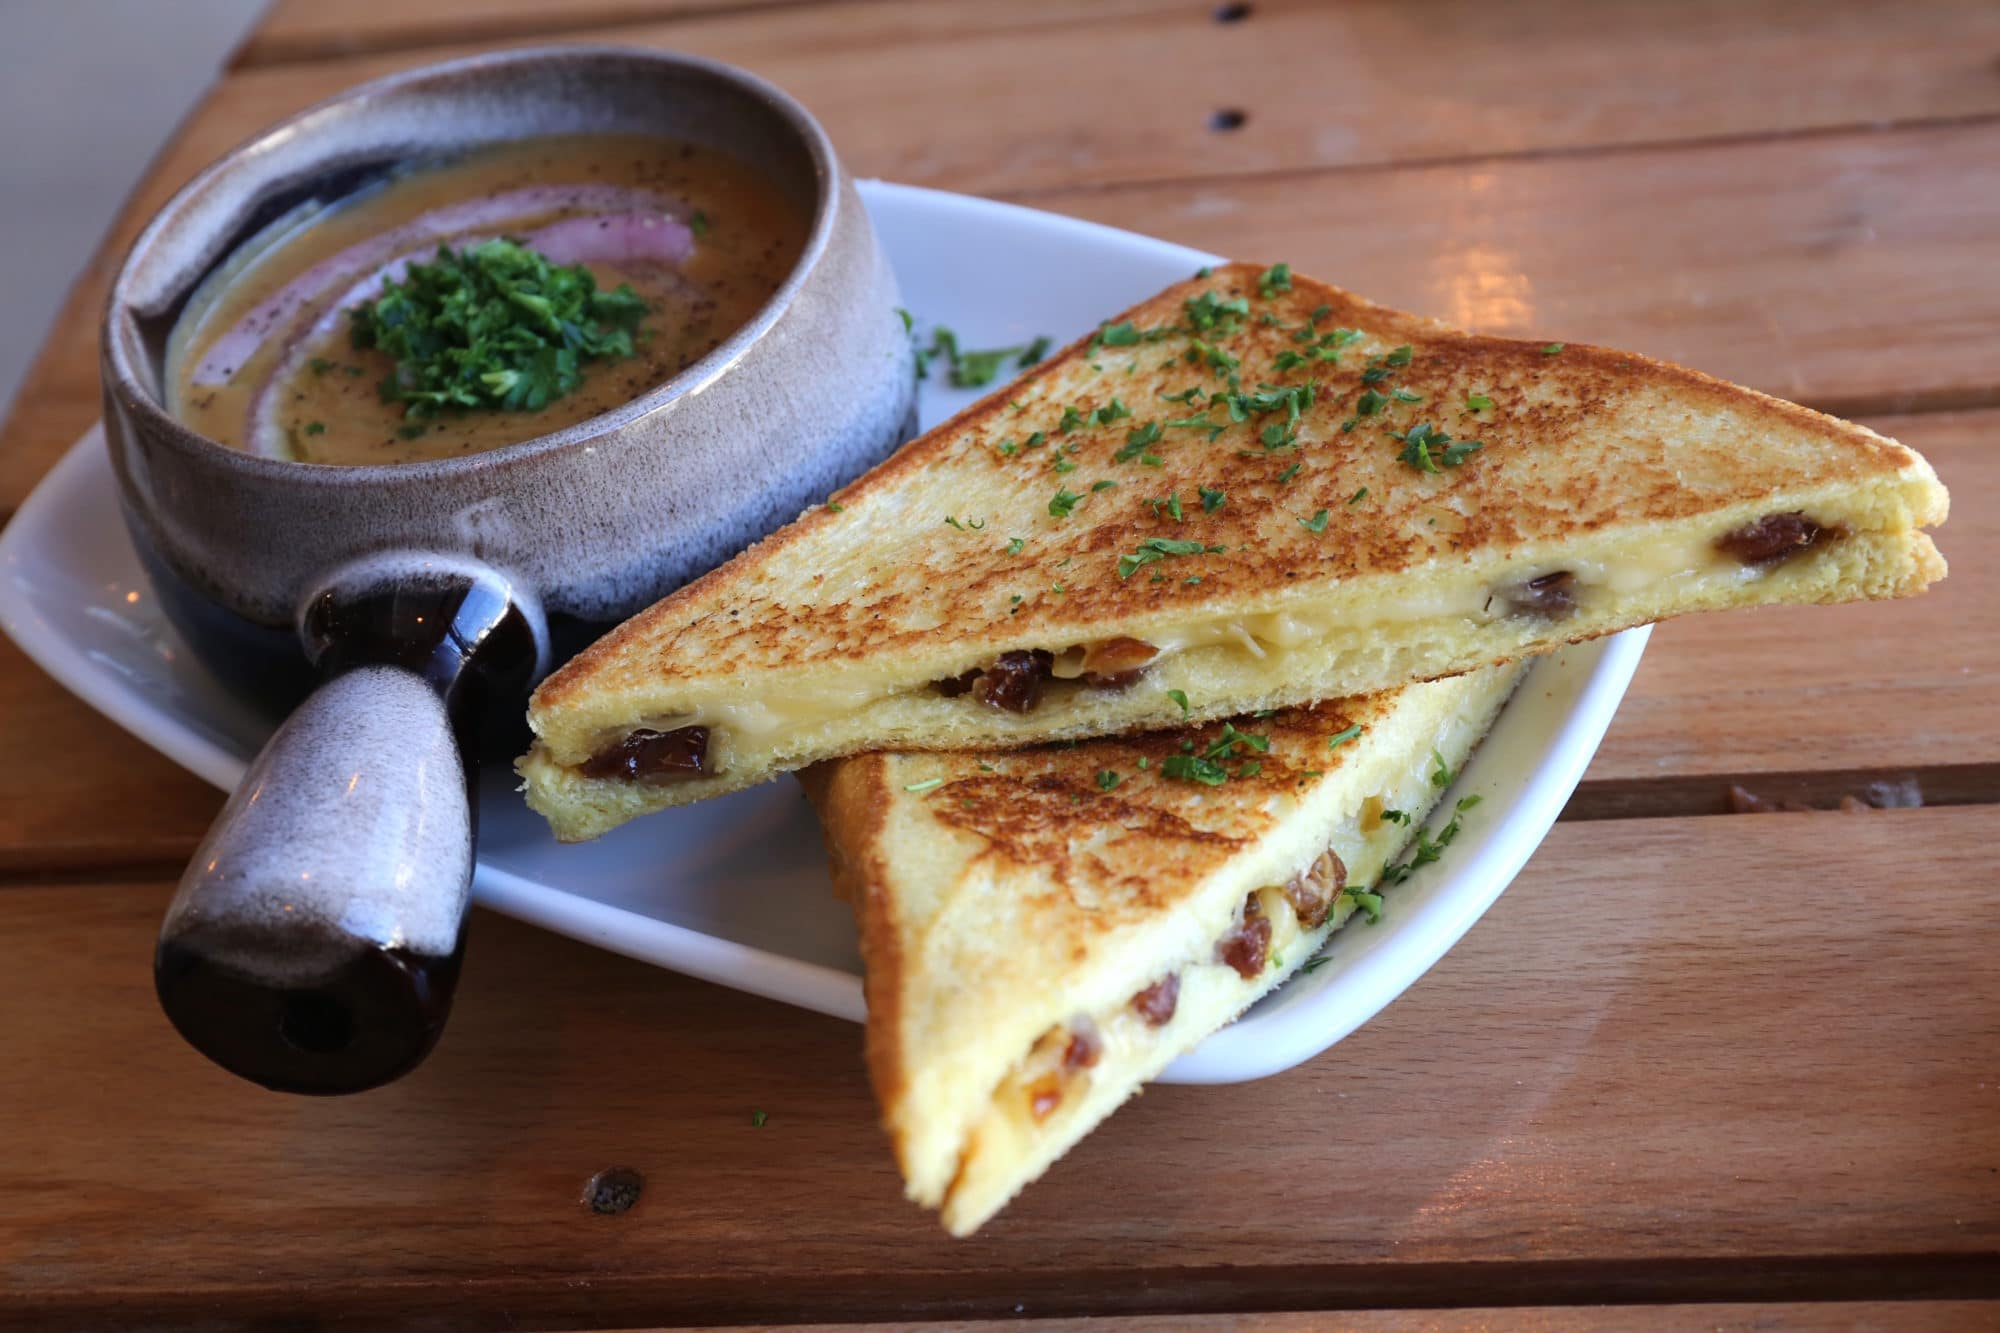 Date Grilled Cheese with Lentil Soup at Maha's Toronto brunch.